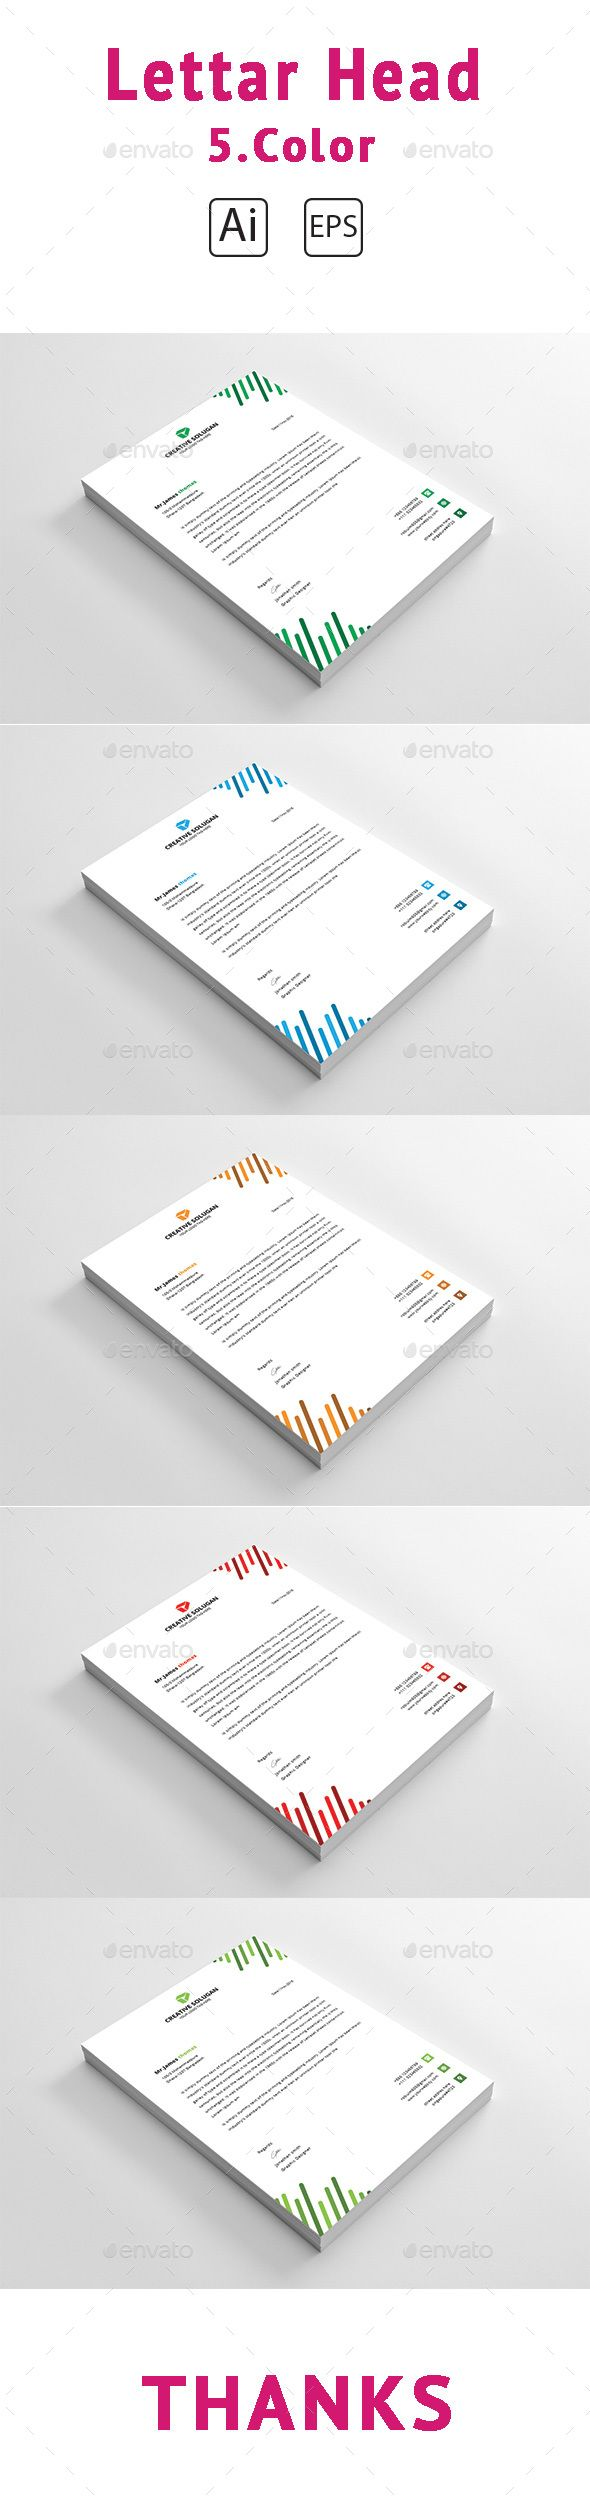 Corporate letterhead design template stationery print template corporate letterhead design template stationery print template vector eps ai illustrator spiritdancerdesigns Image collections